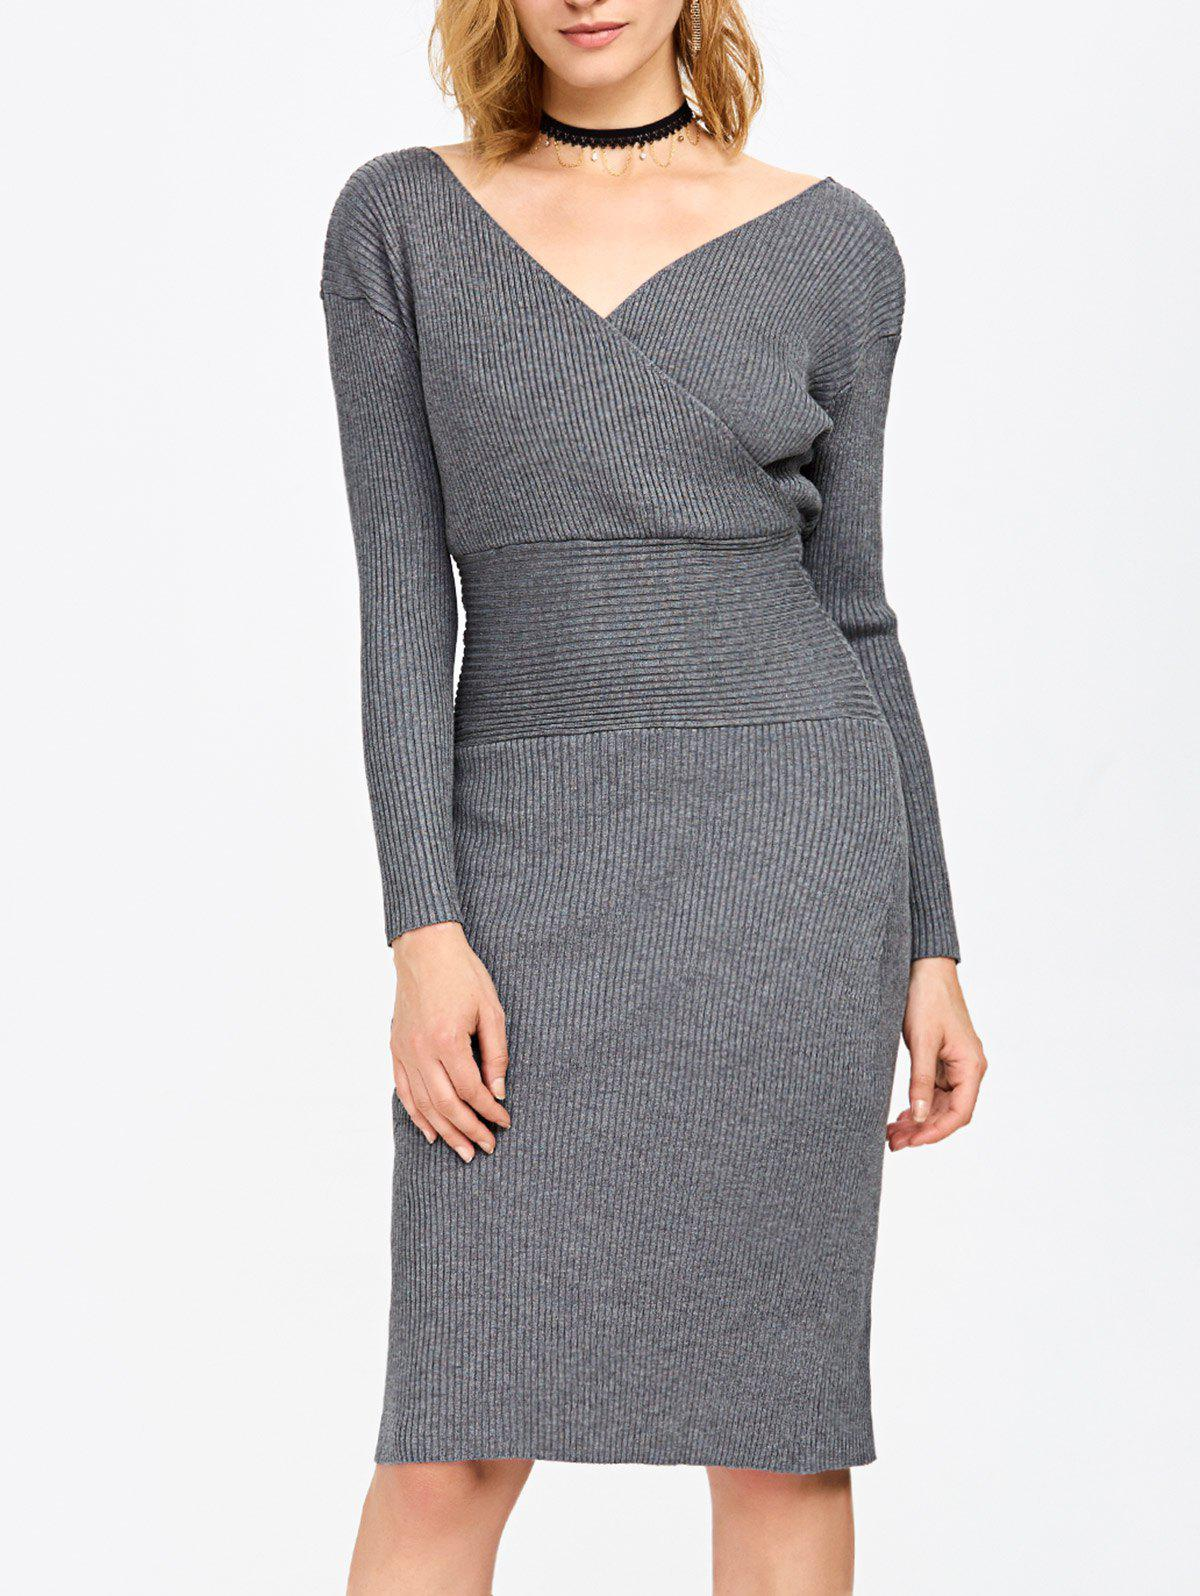 Chic Surplice Ribbed Pencil Knit Fitted Jumper Dress